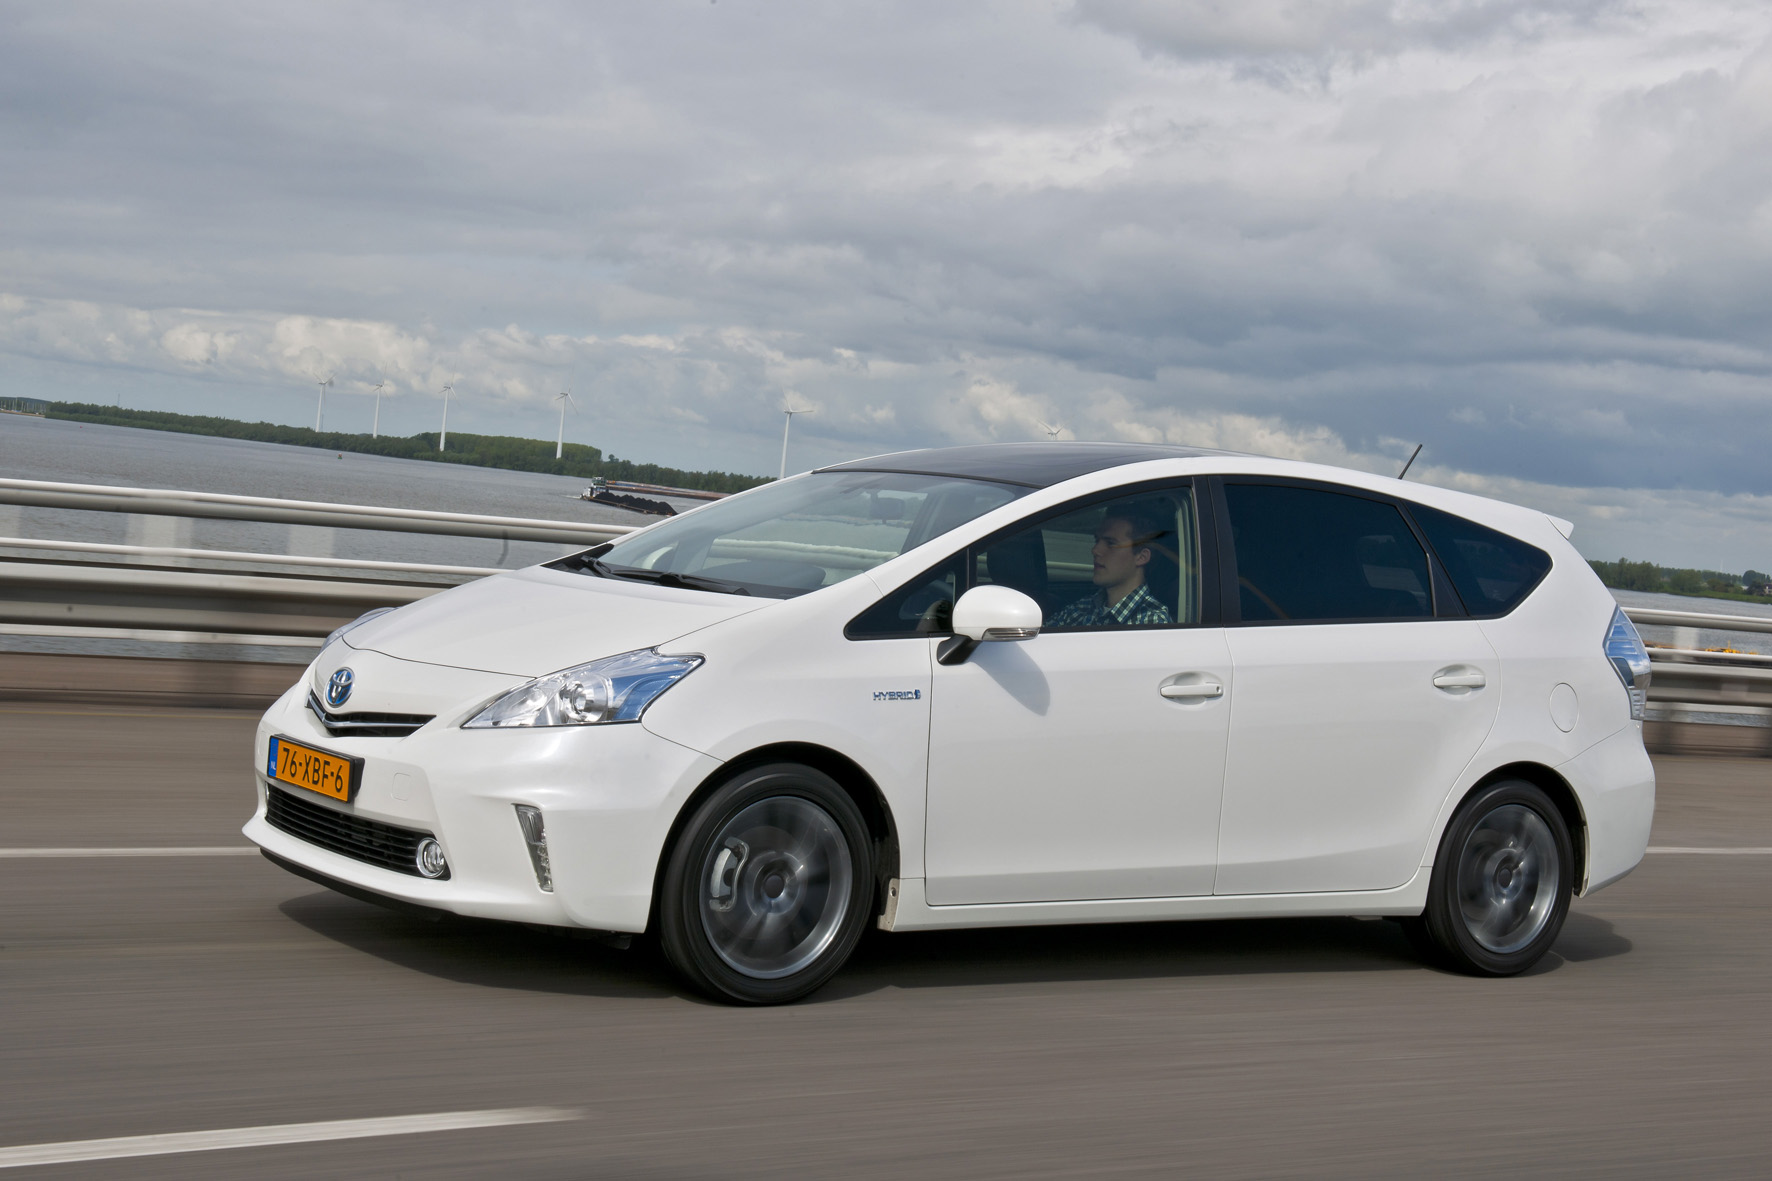 Toyota Prius Wagon Rijdend Wallpapers HD